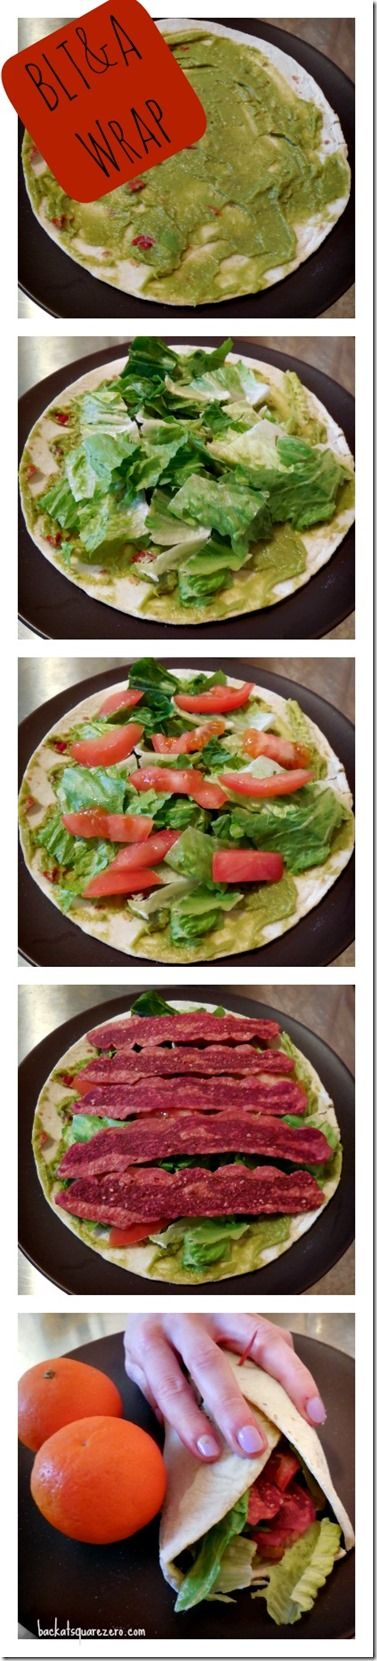 BLT&A Wrap: This wrap is a simple and speedy with only 5 ingredients.  It is gluten free (with Udi's tortillas), uses heart healthy fats from avocado, and by subbing in low sodium turkey bacon you lose the guilt and keep the flavor.  #glutenfree #healthyfats #simplemeal